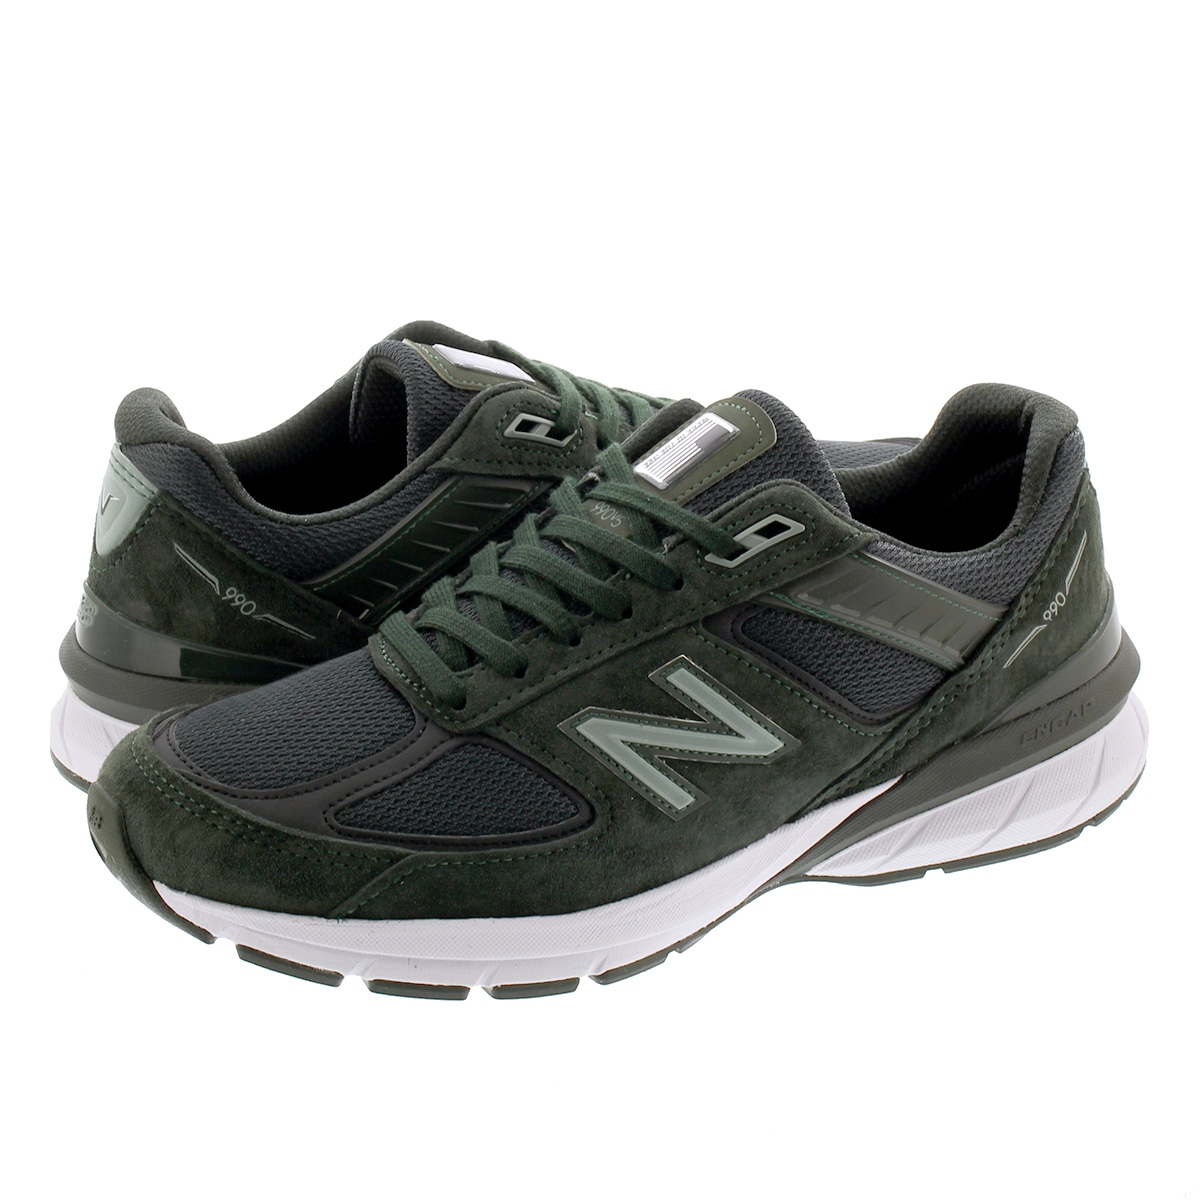 NEW BALANCE M990DC5 【MADE IN U.S.A】【Dワイズ】 ニューバランス M990 DC5 RIFLE GREEN